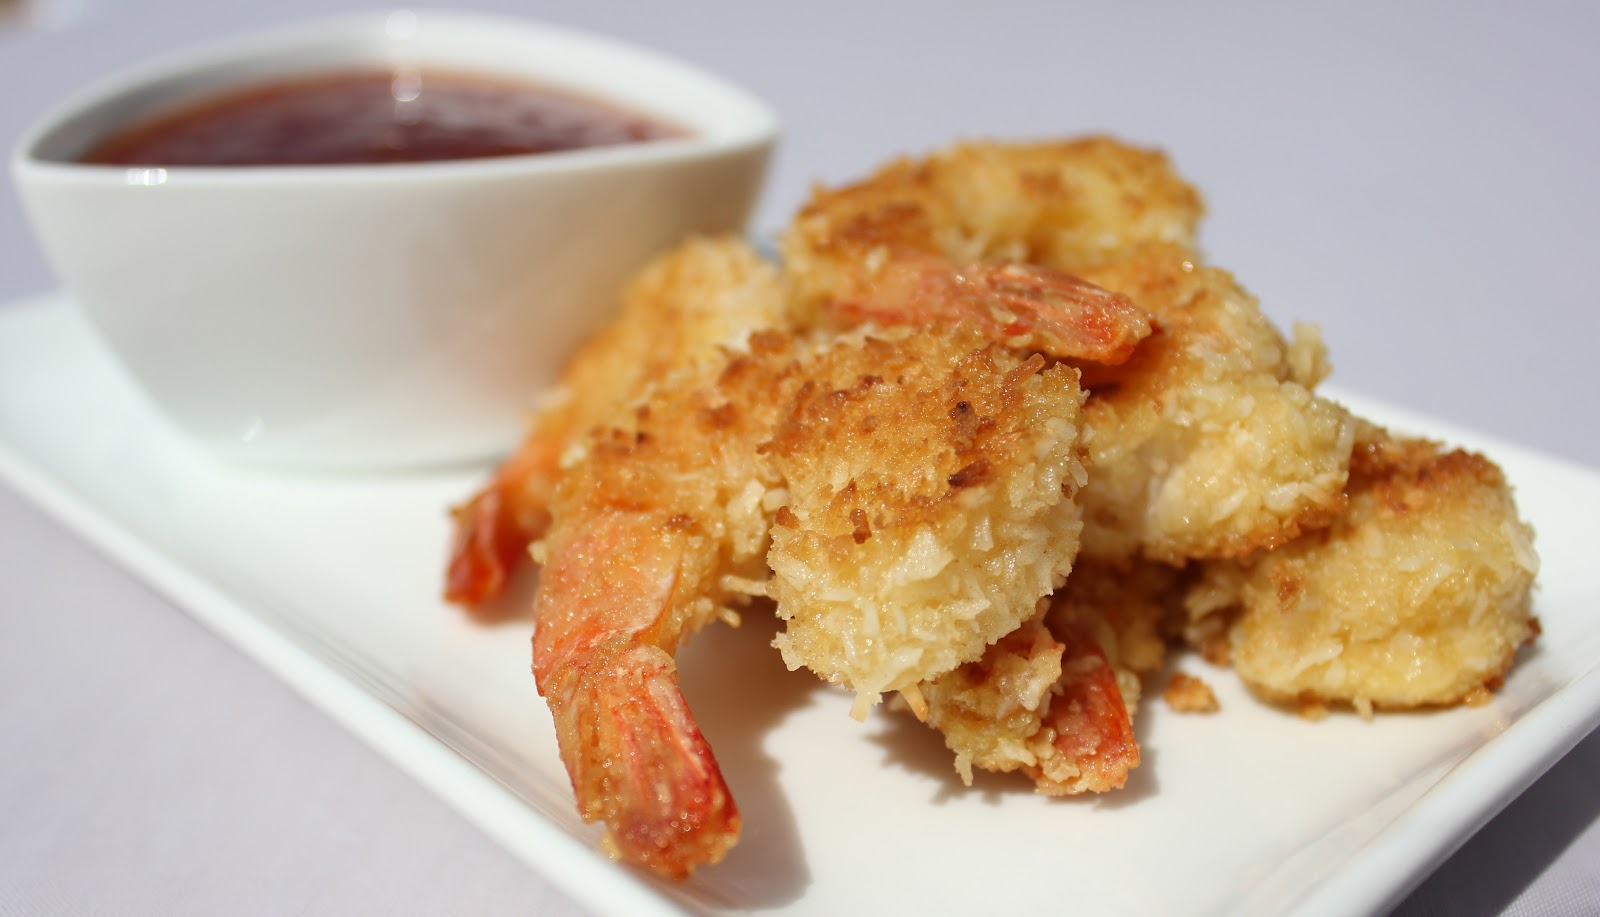 Cooking with Jax: Coconut Shrimp w/ Sweet & Spicy Dipping Sauce